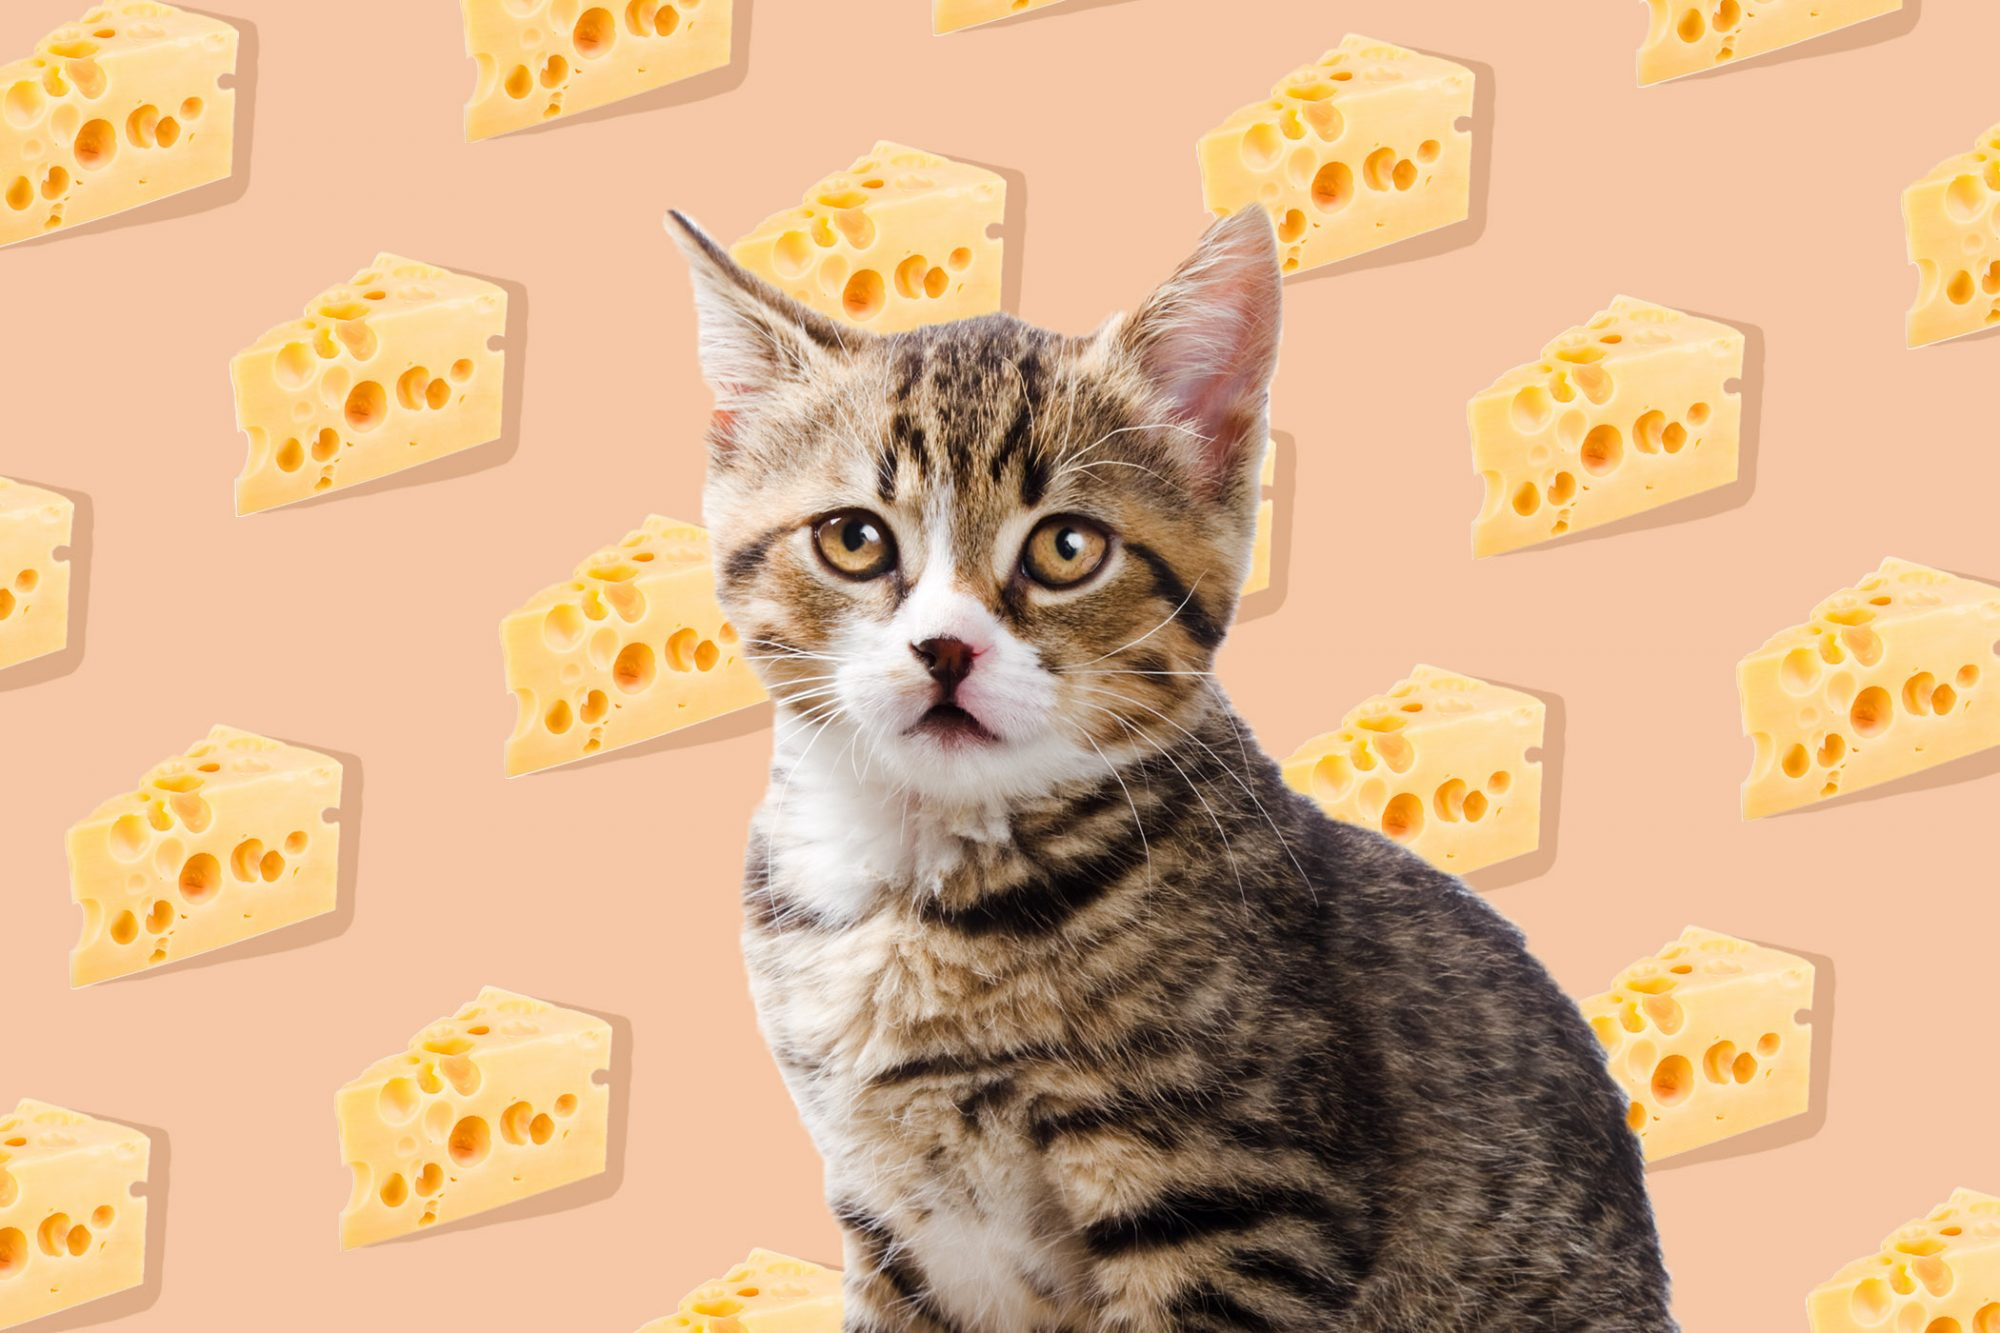 Cat with cheese pattern in background